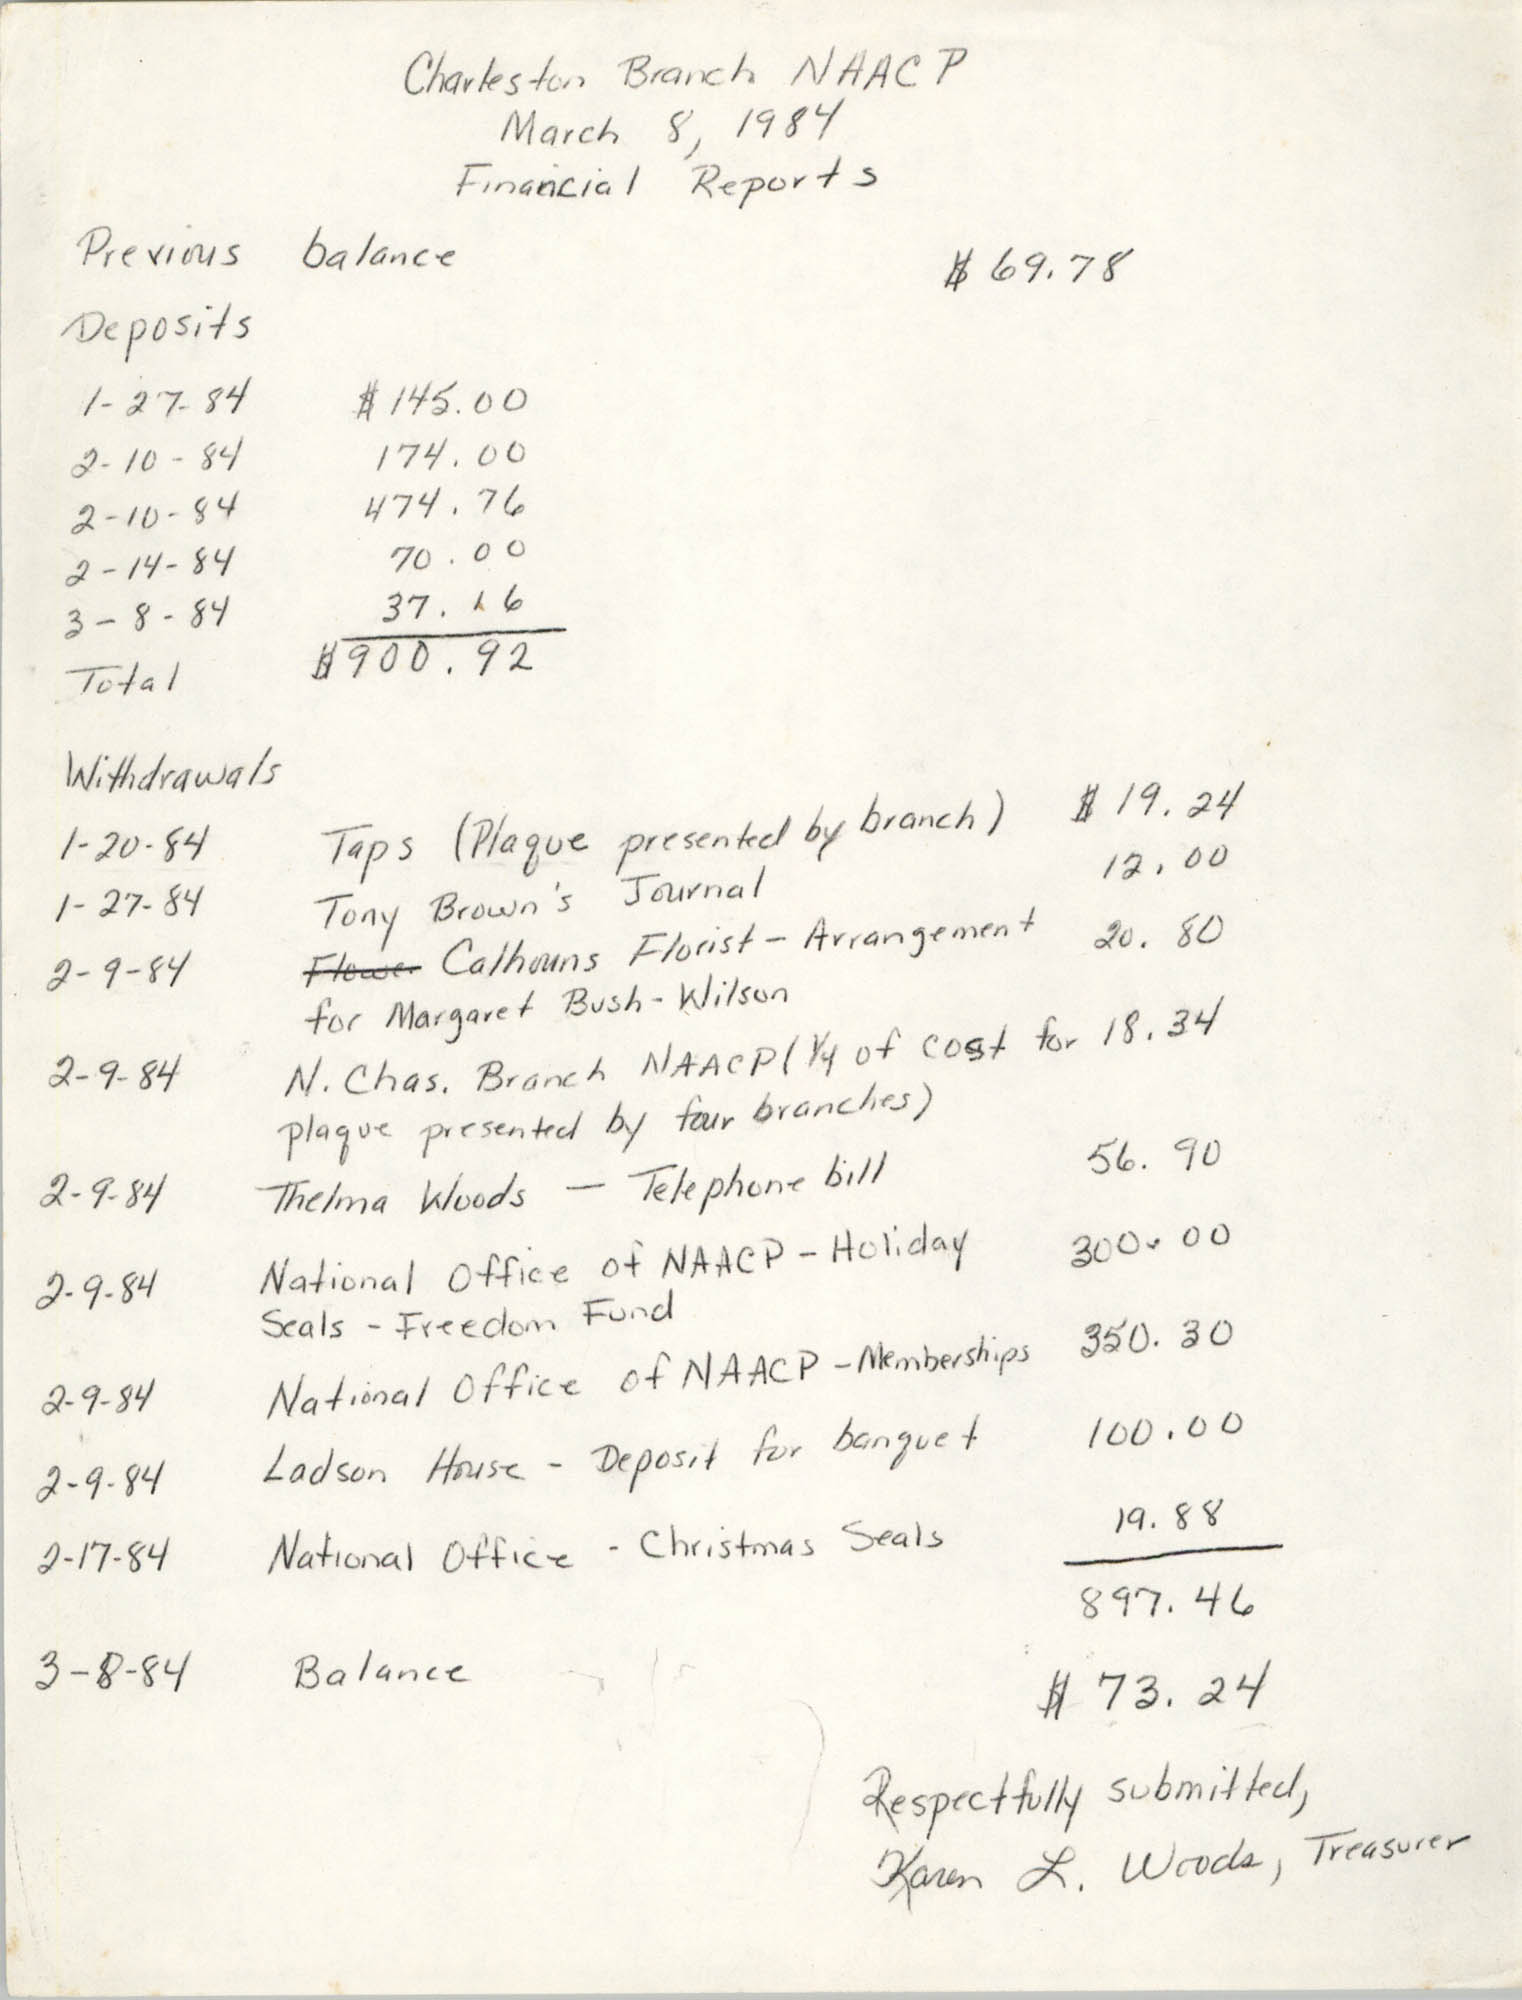 Charleston Branch of the NAACP Financial Report, March 8, 1984